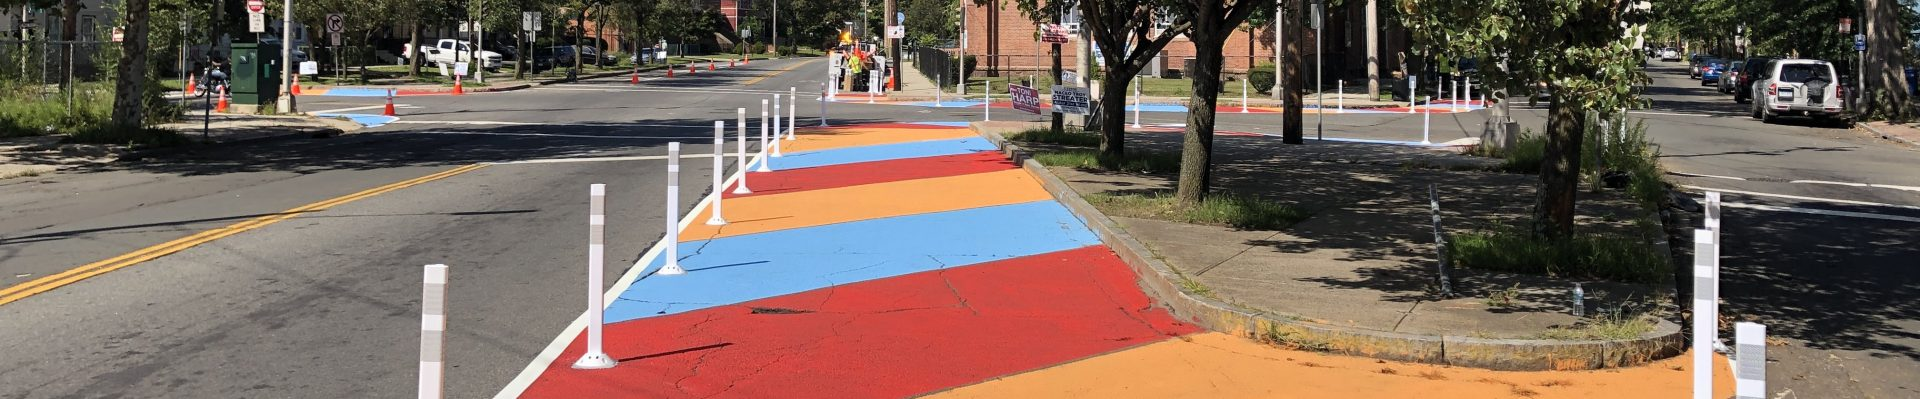 Second Round of Tactical Urbanism Materials and Design Workshops Now Open